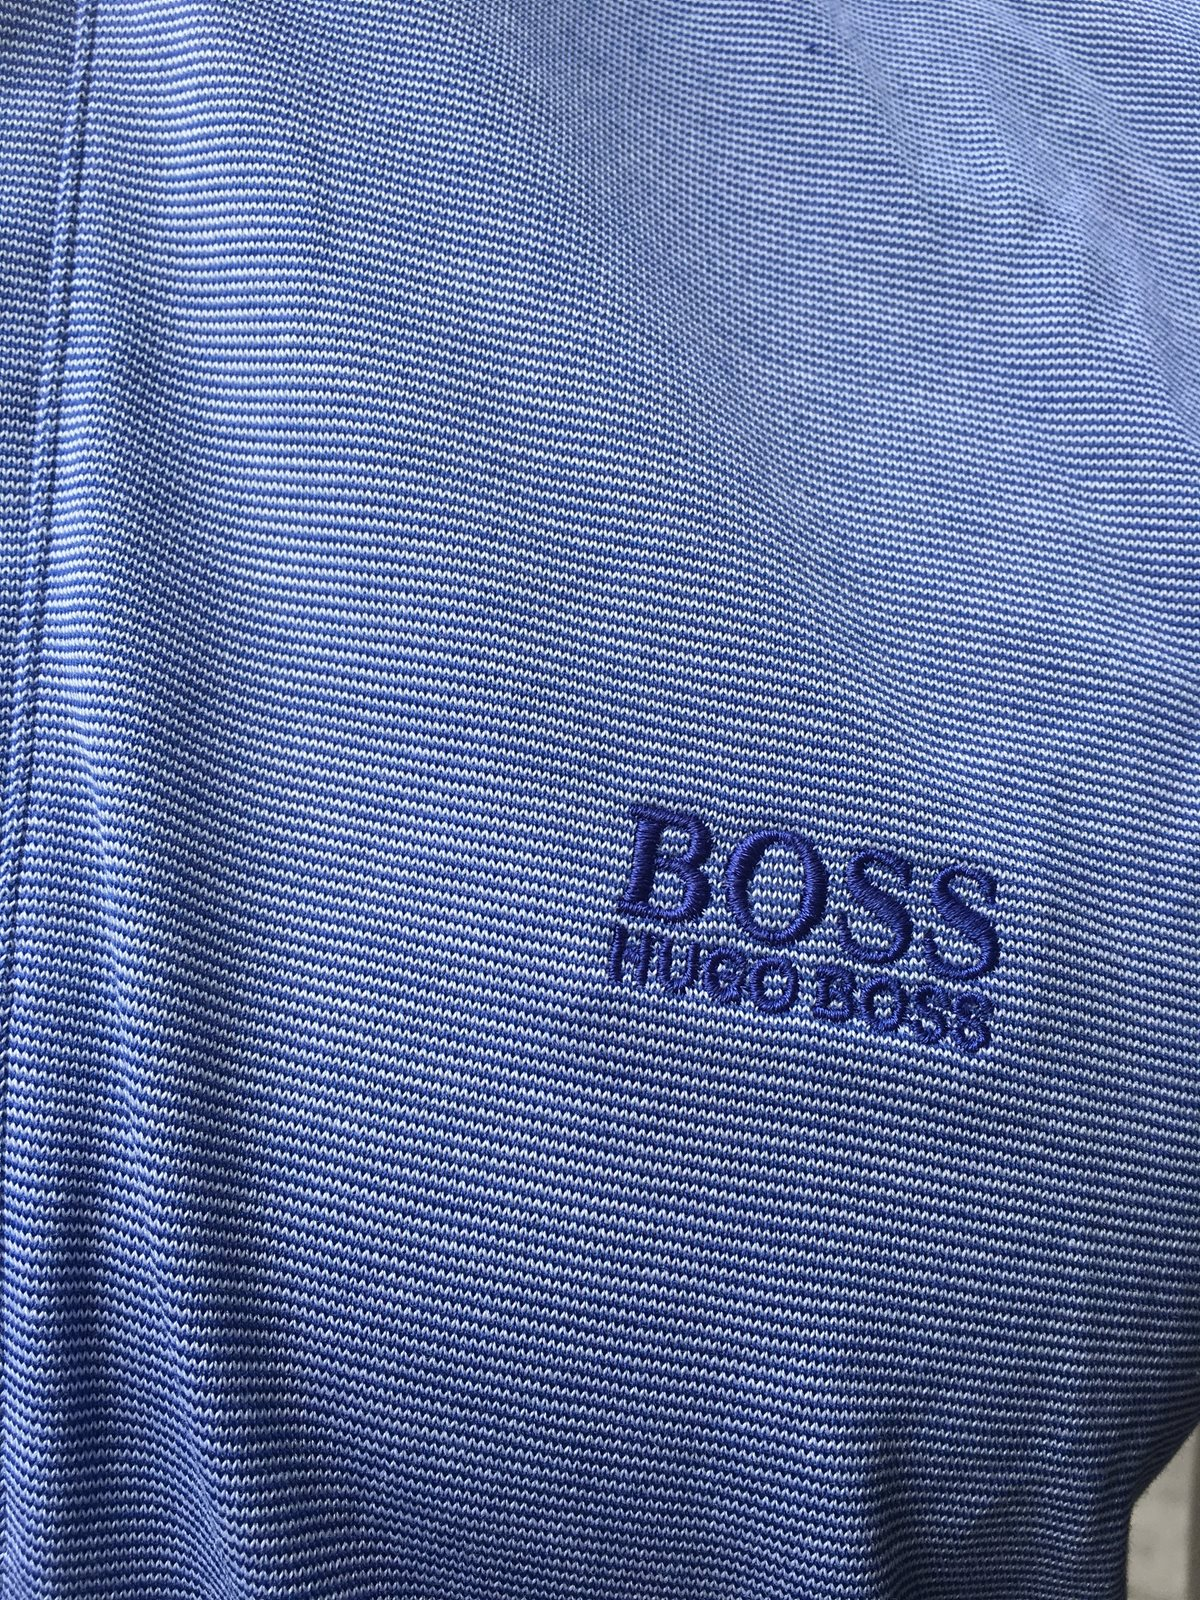 Hugo Boss - The Loft, London